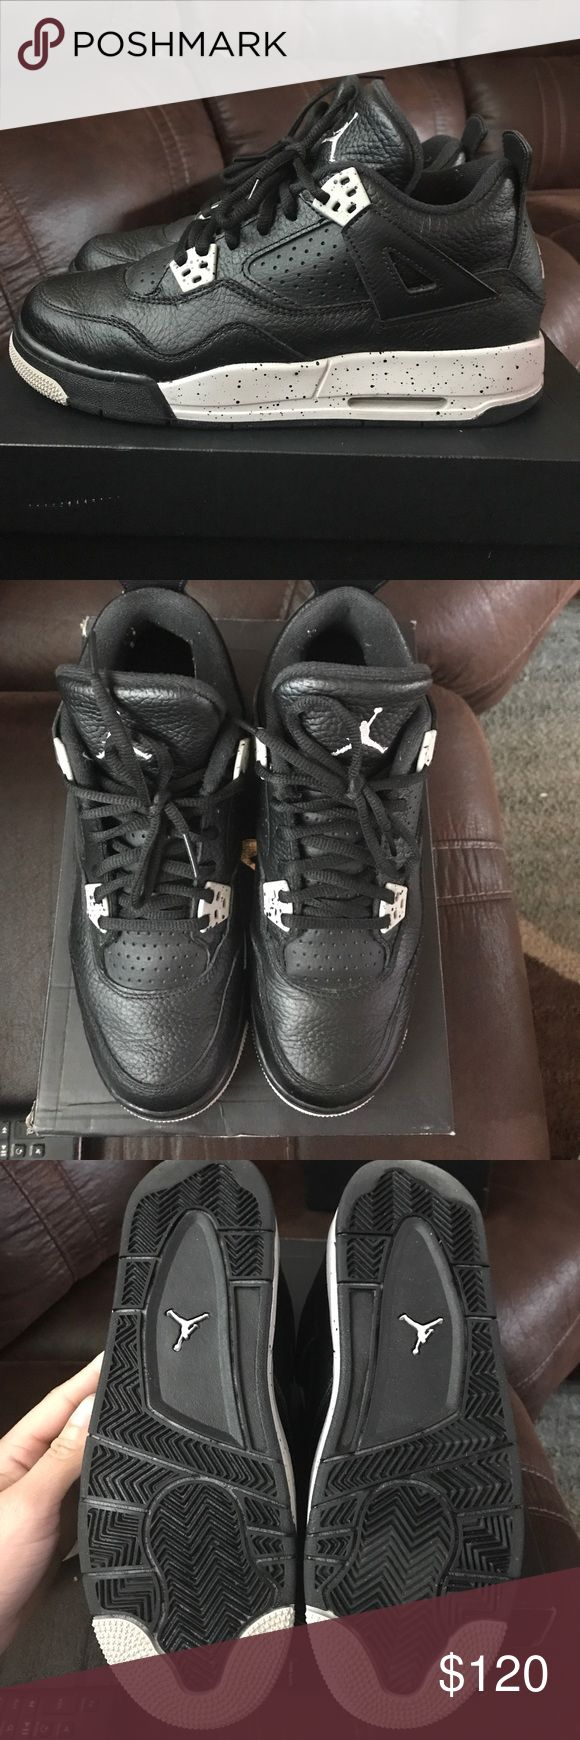 Jordan Retro 4 Oreo Barely worn, minimal creasing, includes toe box inserts and original box; size 7Y; WILL CONSIDER REASONABLE OFFERS! Jordan Shoes Sneakers